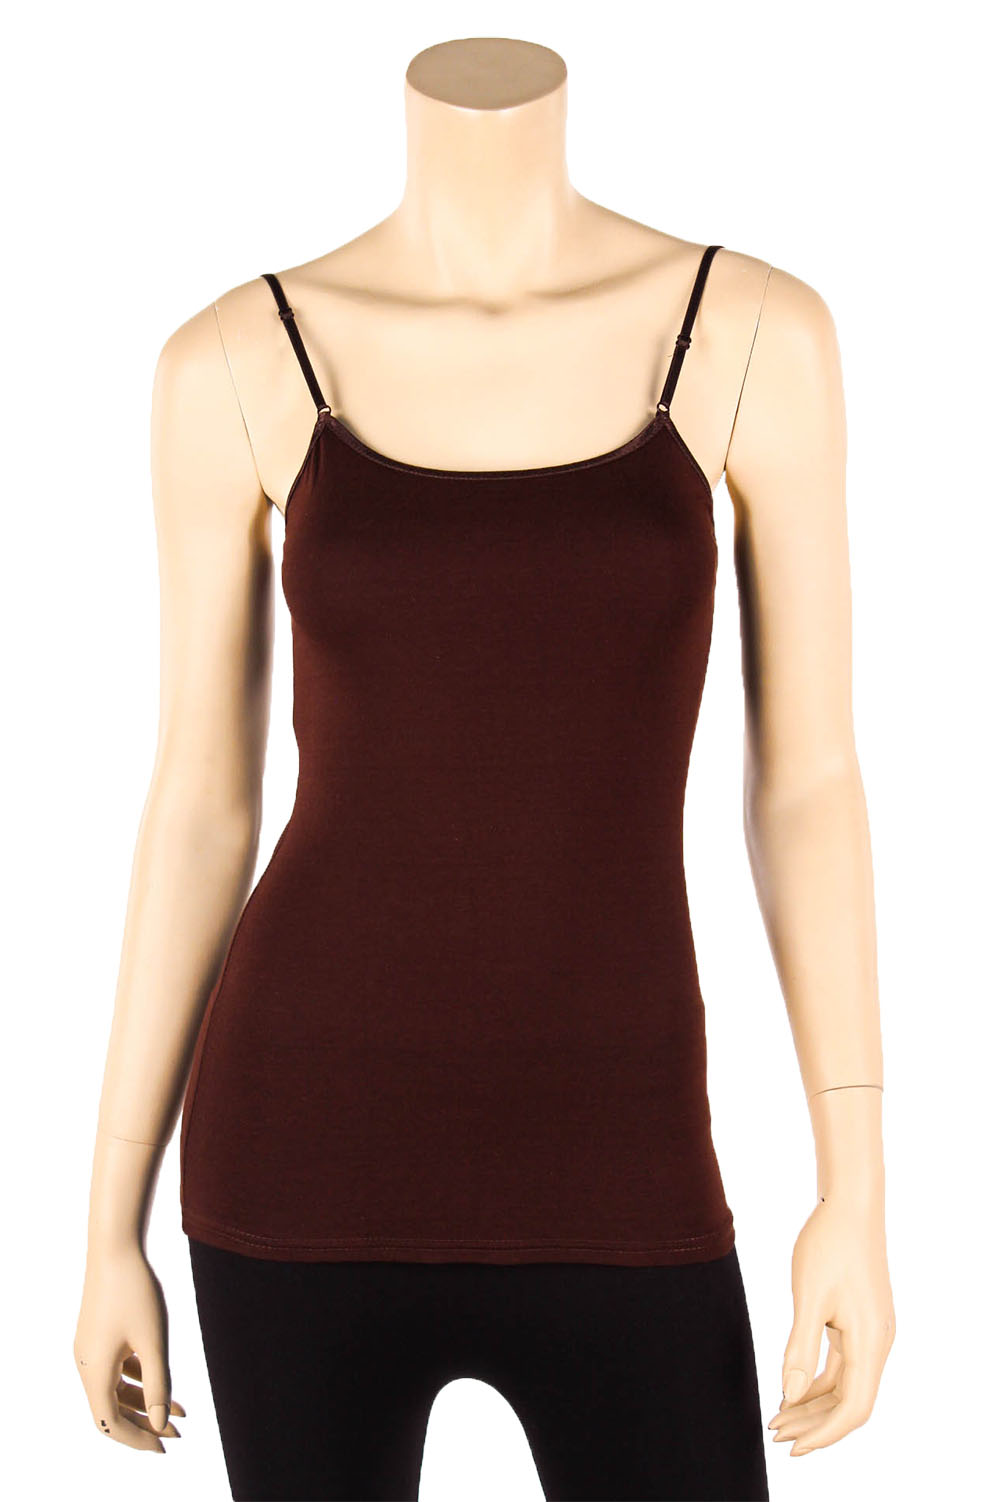 Mopas Women's Cotton Camisole Cami Long Tank Top